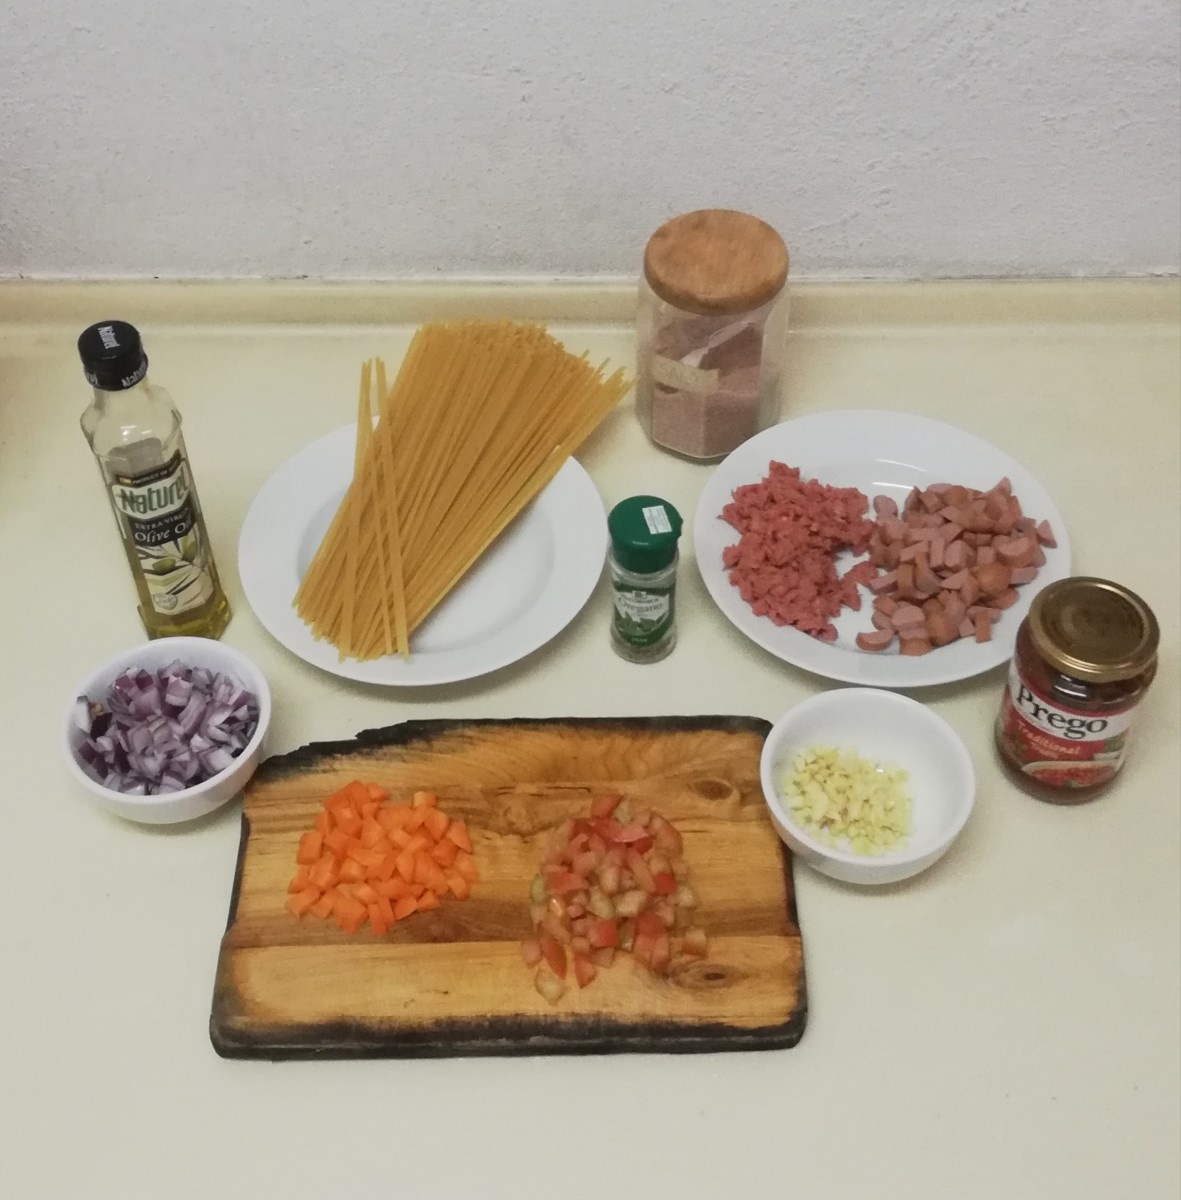 Ingredients laid out for the pasta